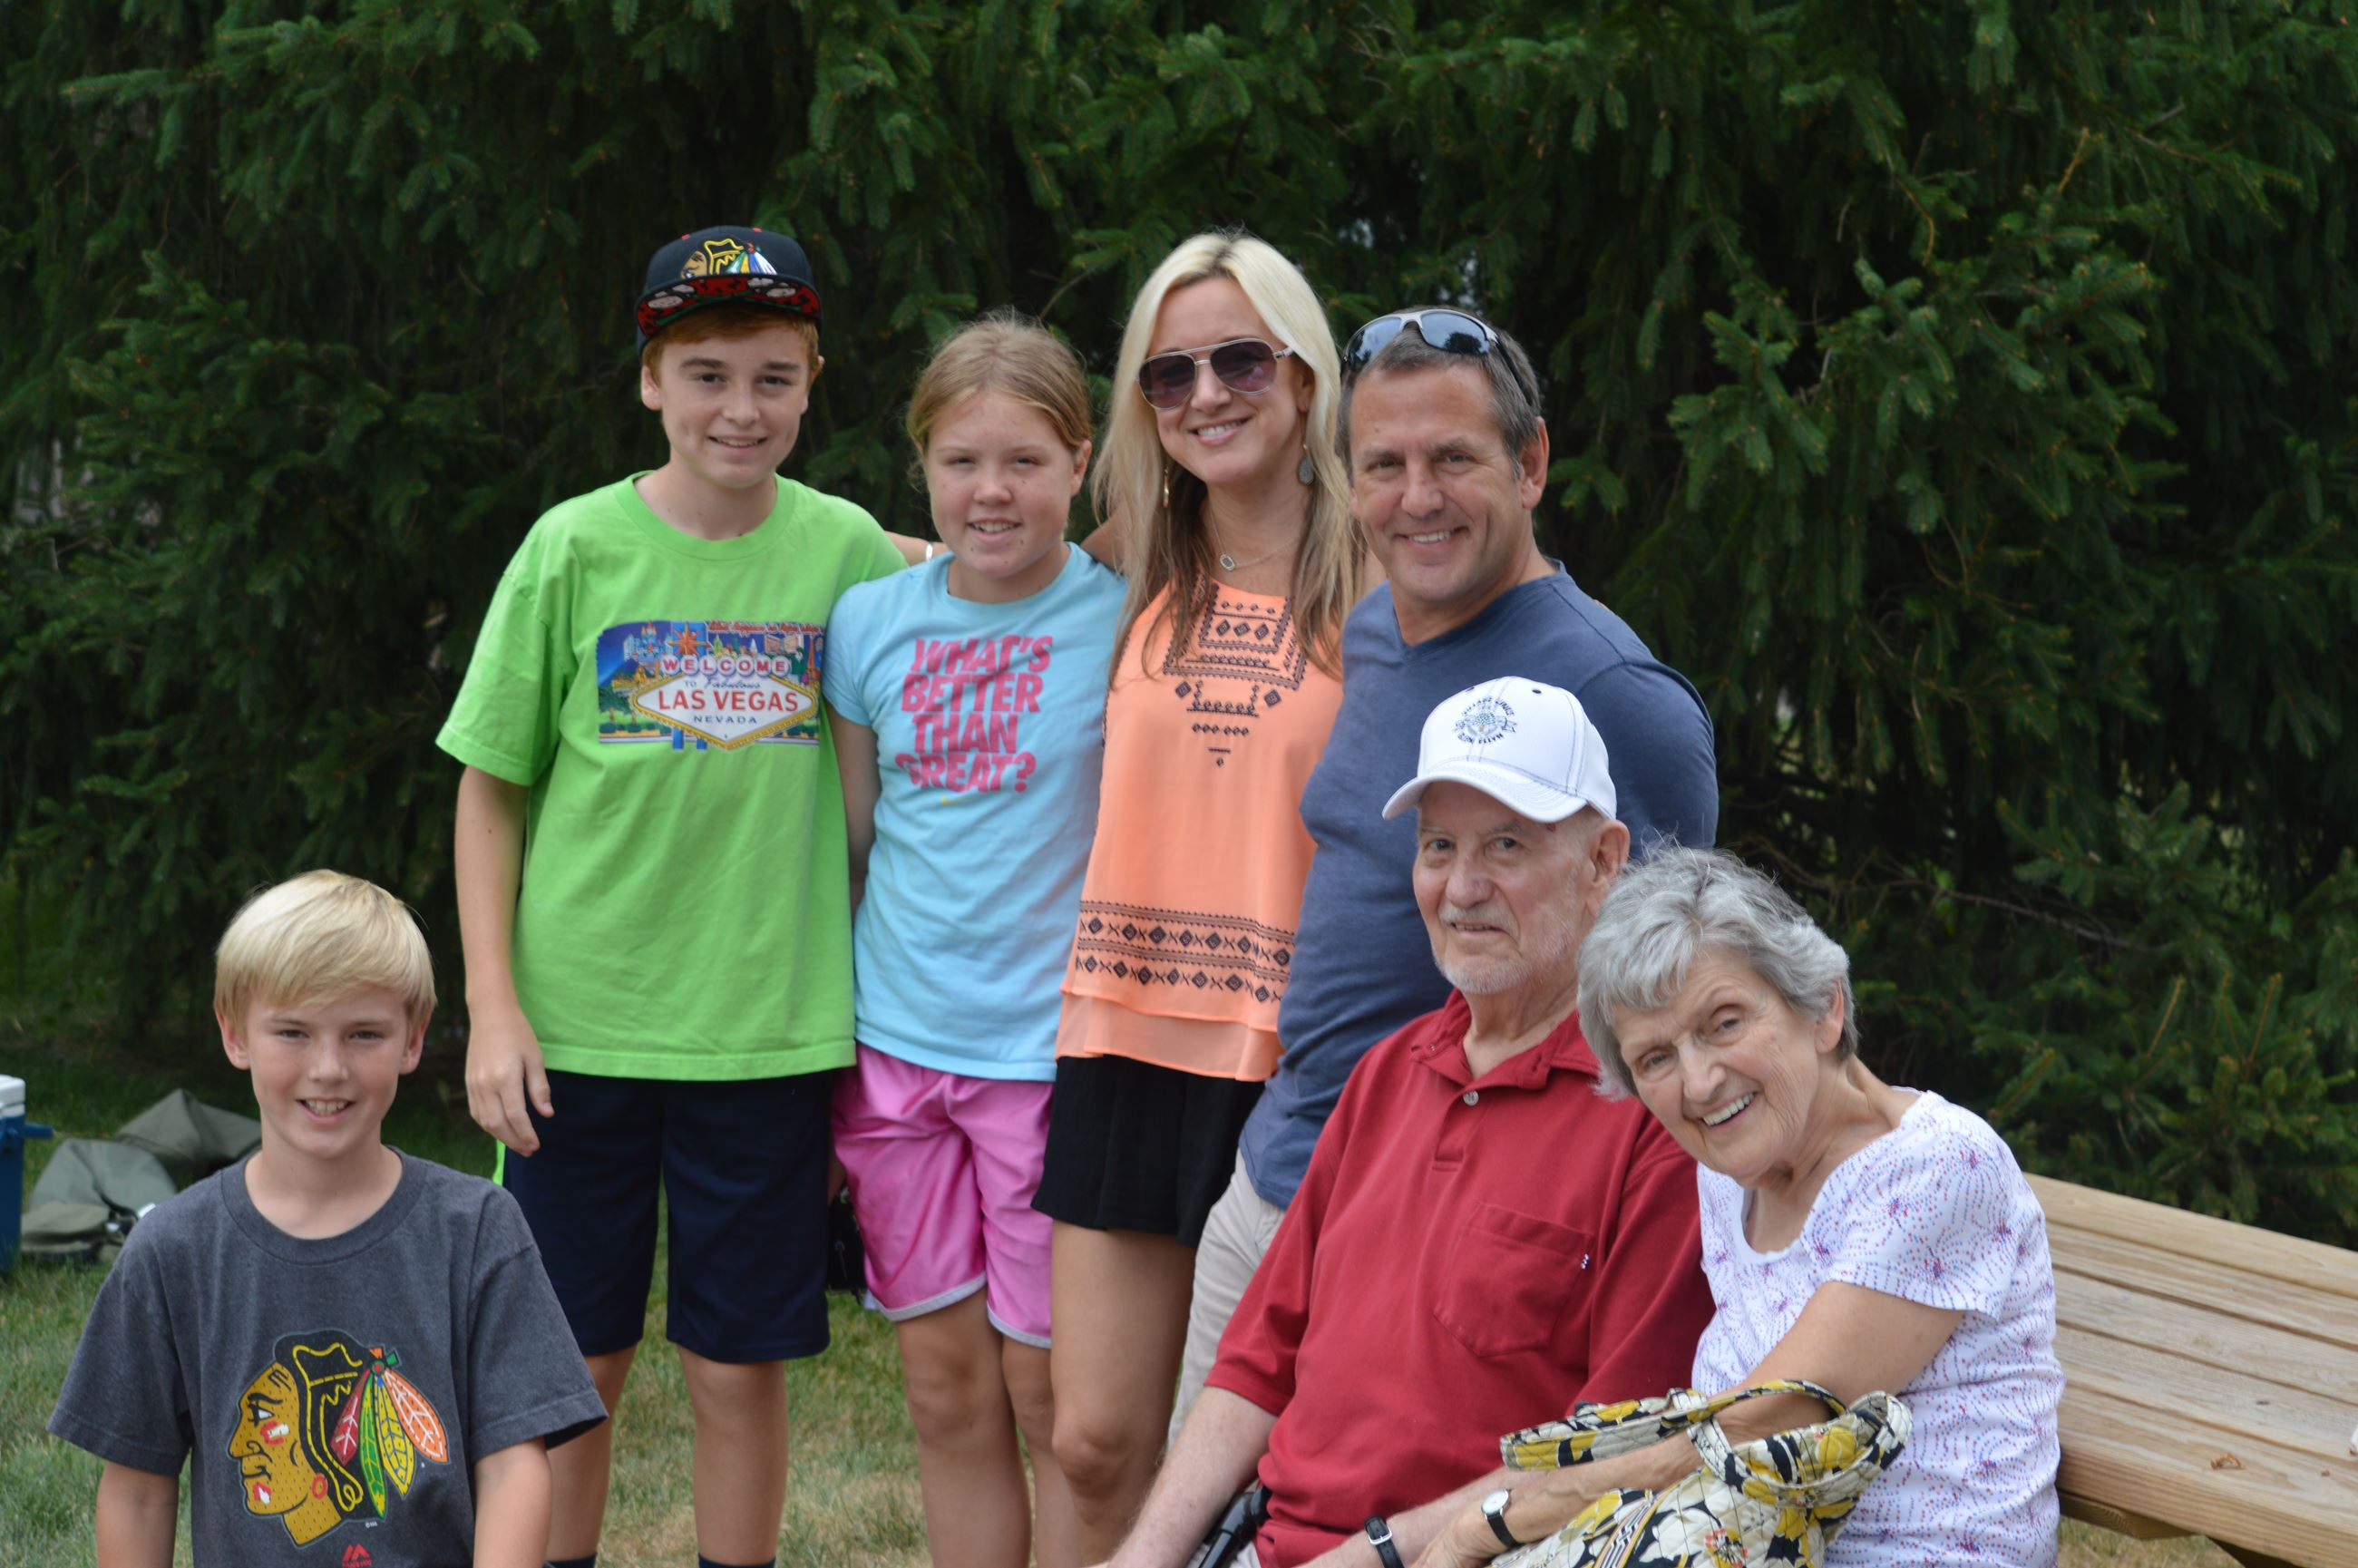 Family at Hometown Picnic at Naper Settlement